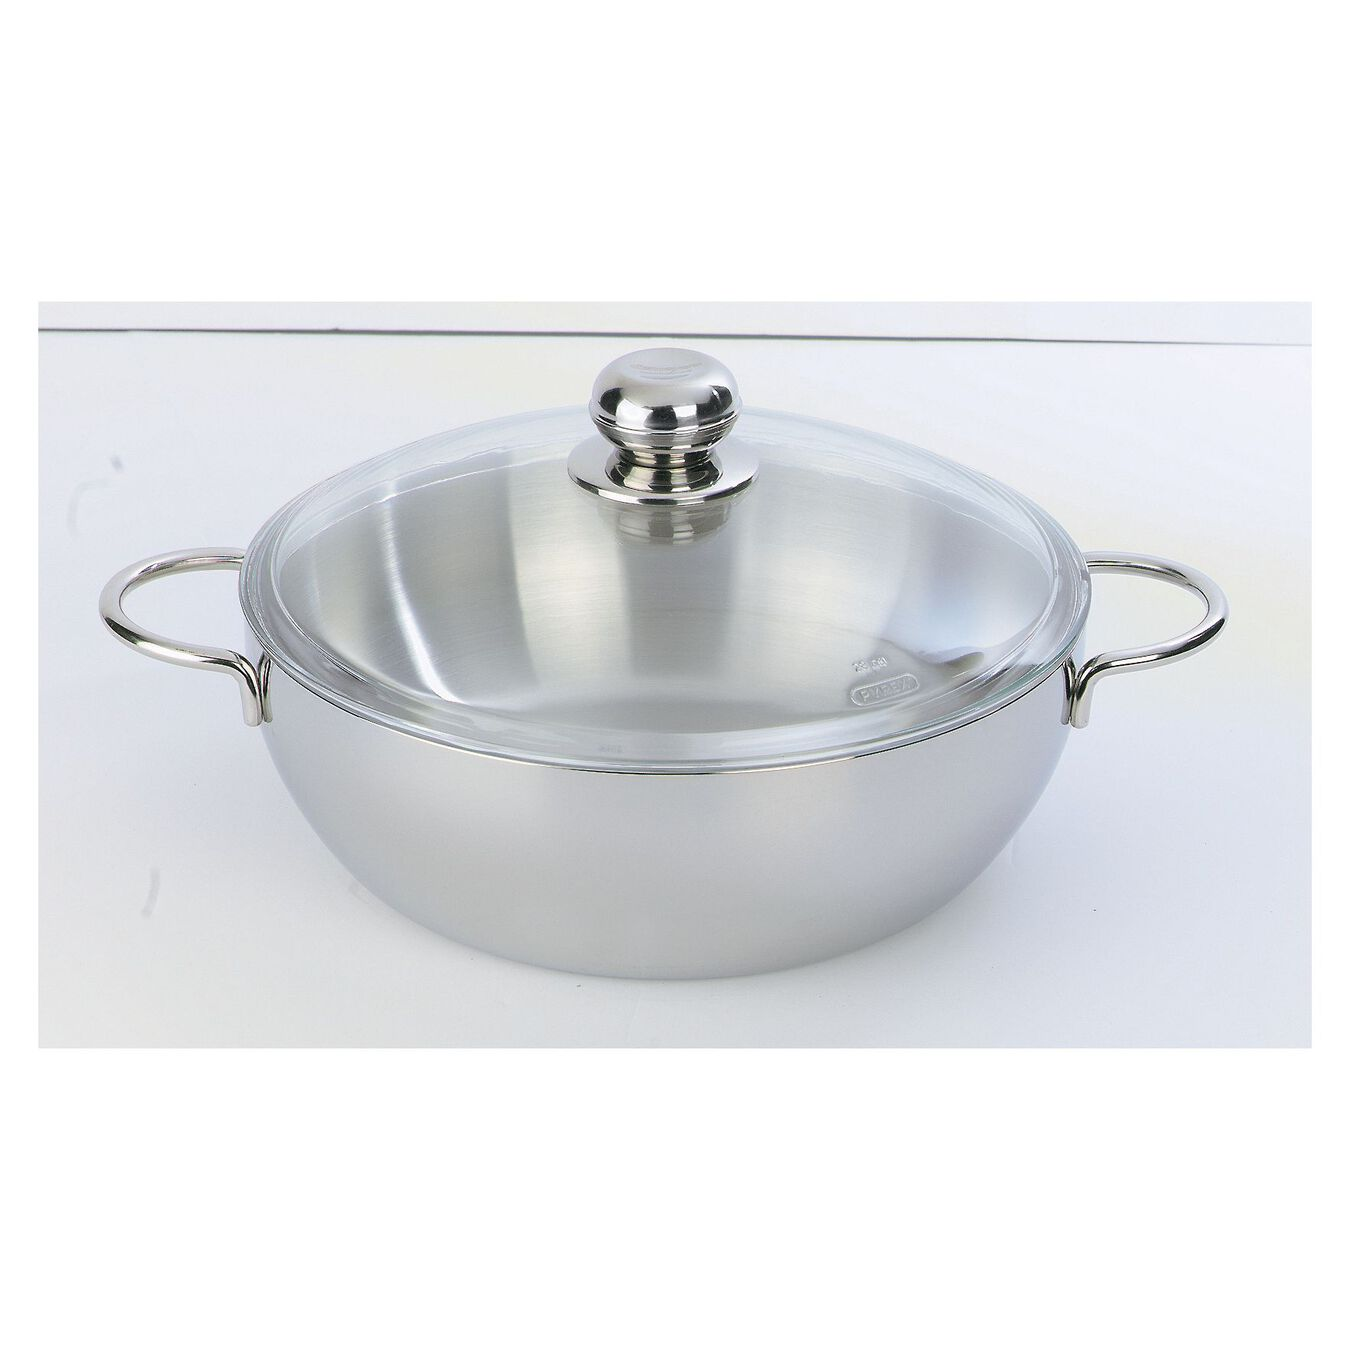 8.5-qt Stainless Steel Stock Pot,,large 1